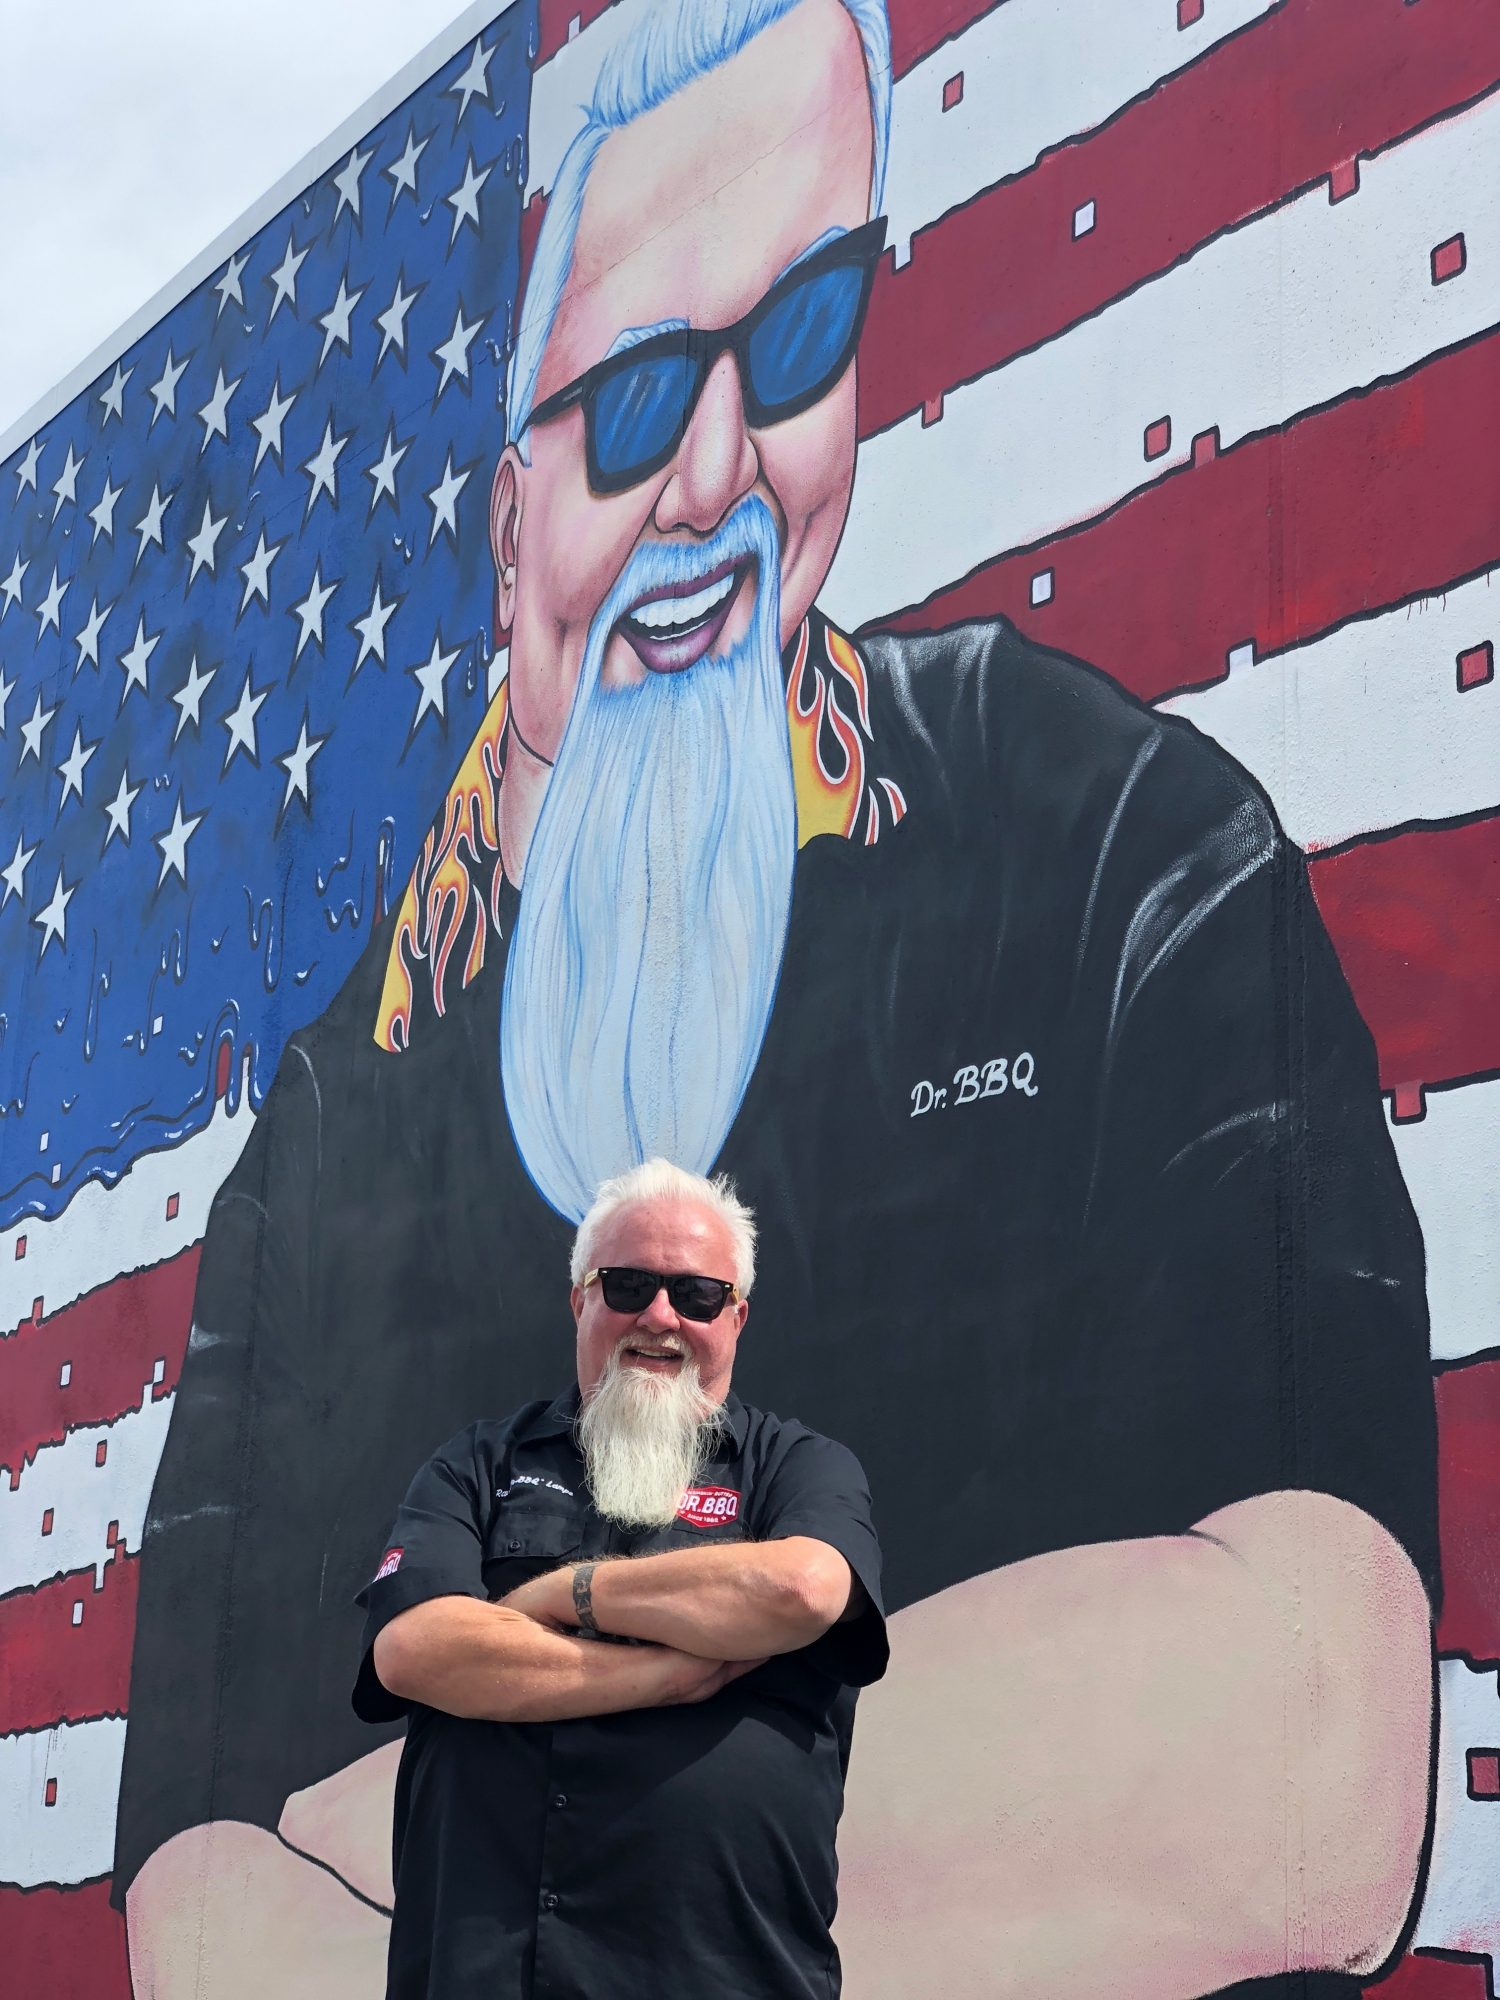 Ray Lampe standing in front of Dr. BBQ Mural